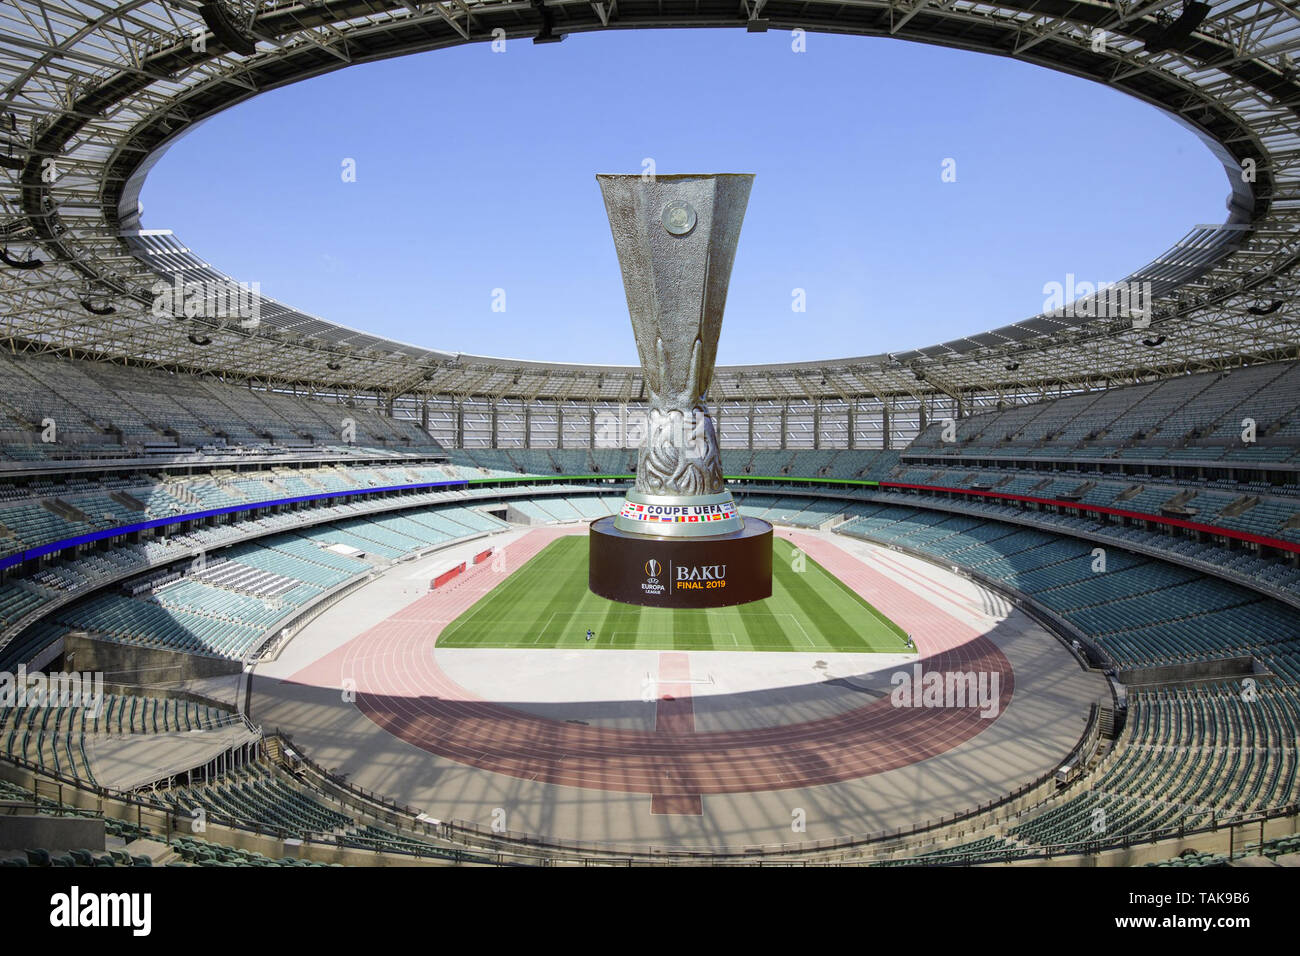 Azerbaijan, Baku - May 26: UEFA Champions League . Baku Olympic Stadium Final 2019 . Coupe Uefa . Europa League 2019 . The final cup in the middle of  - Stock Image